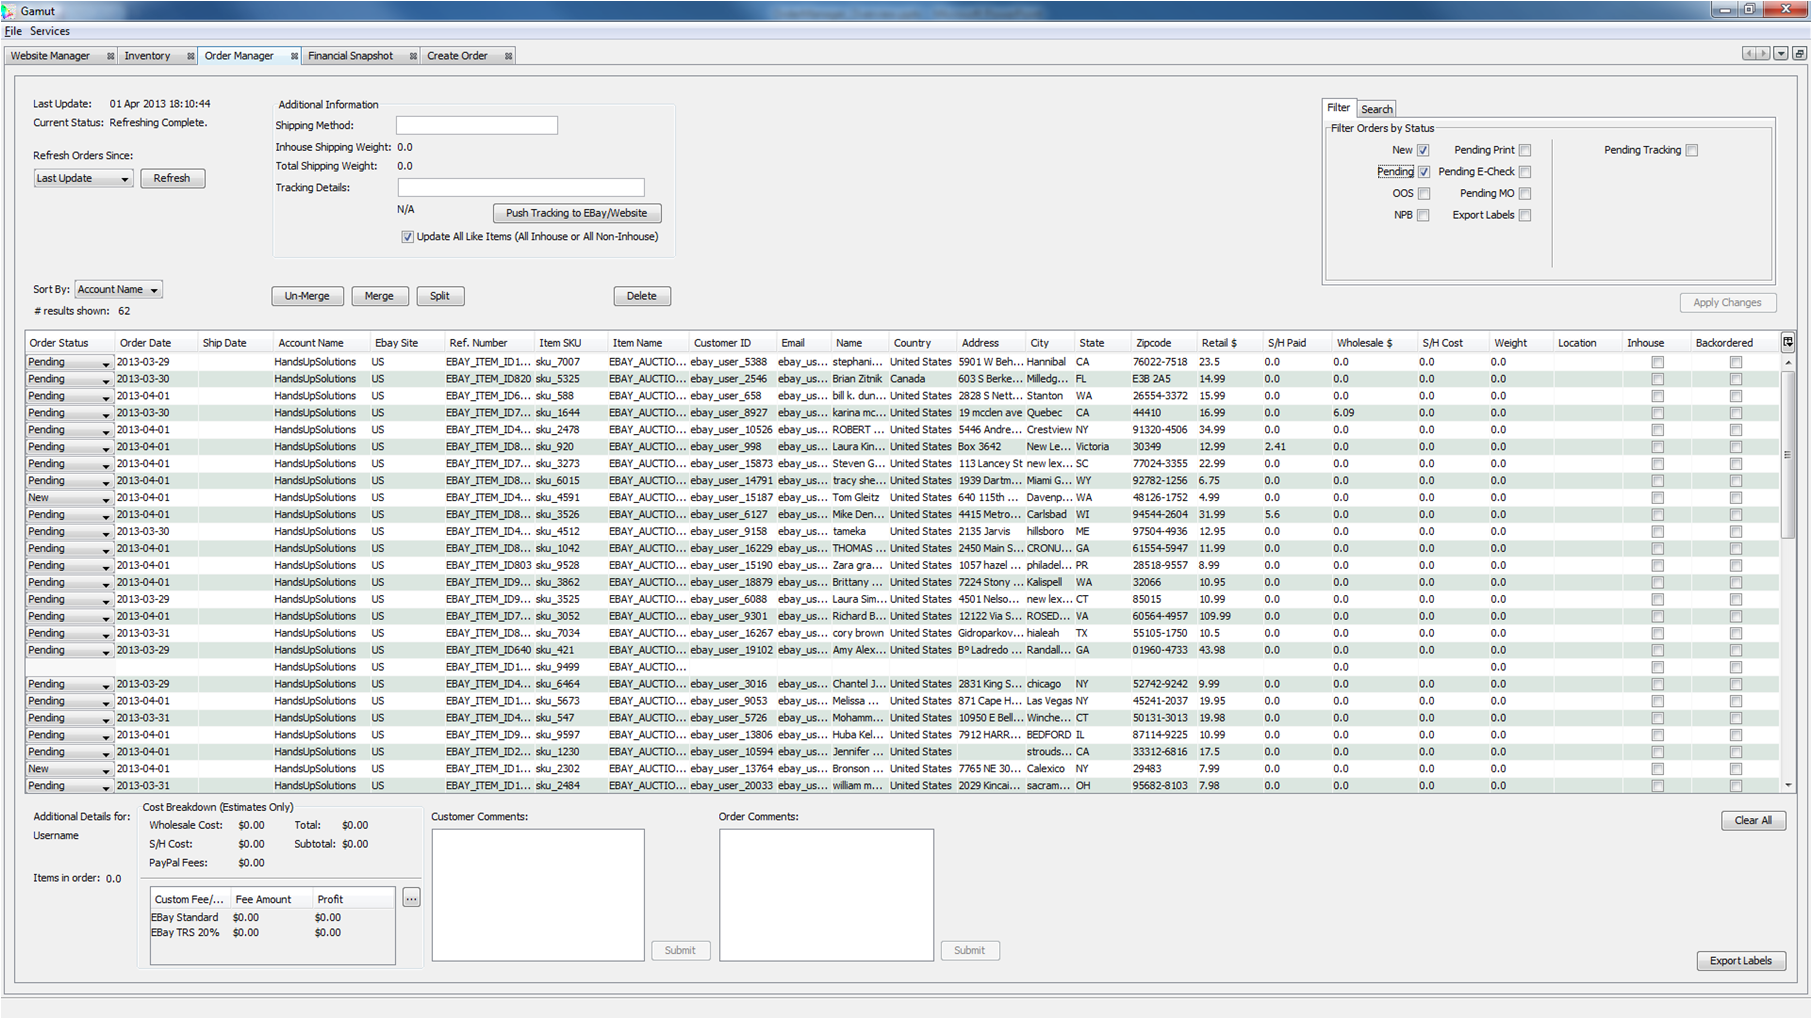 Gamut Order Manager Screenshot